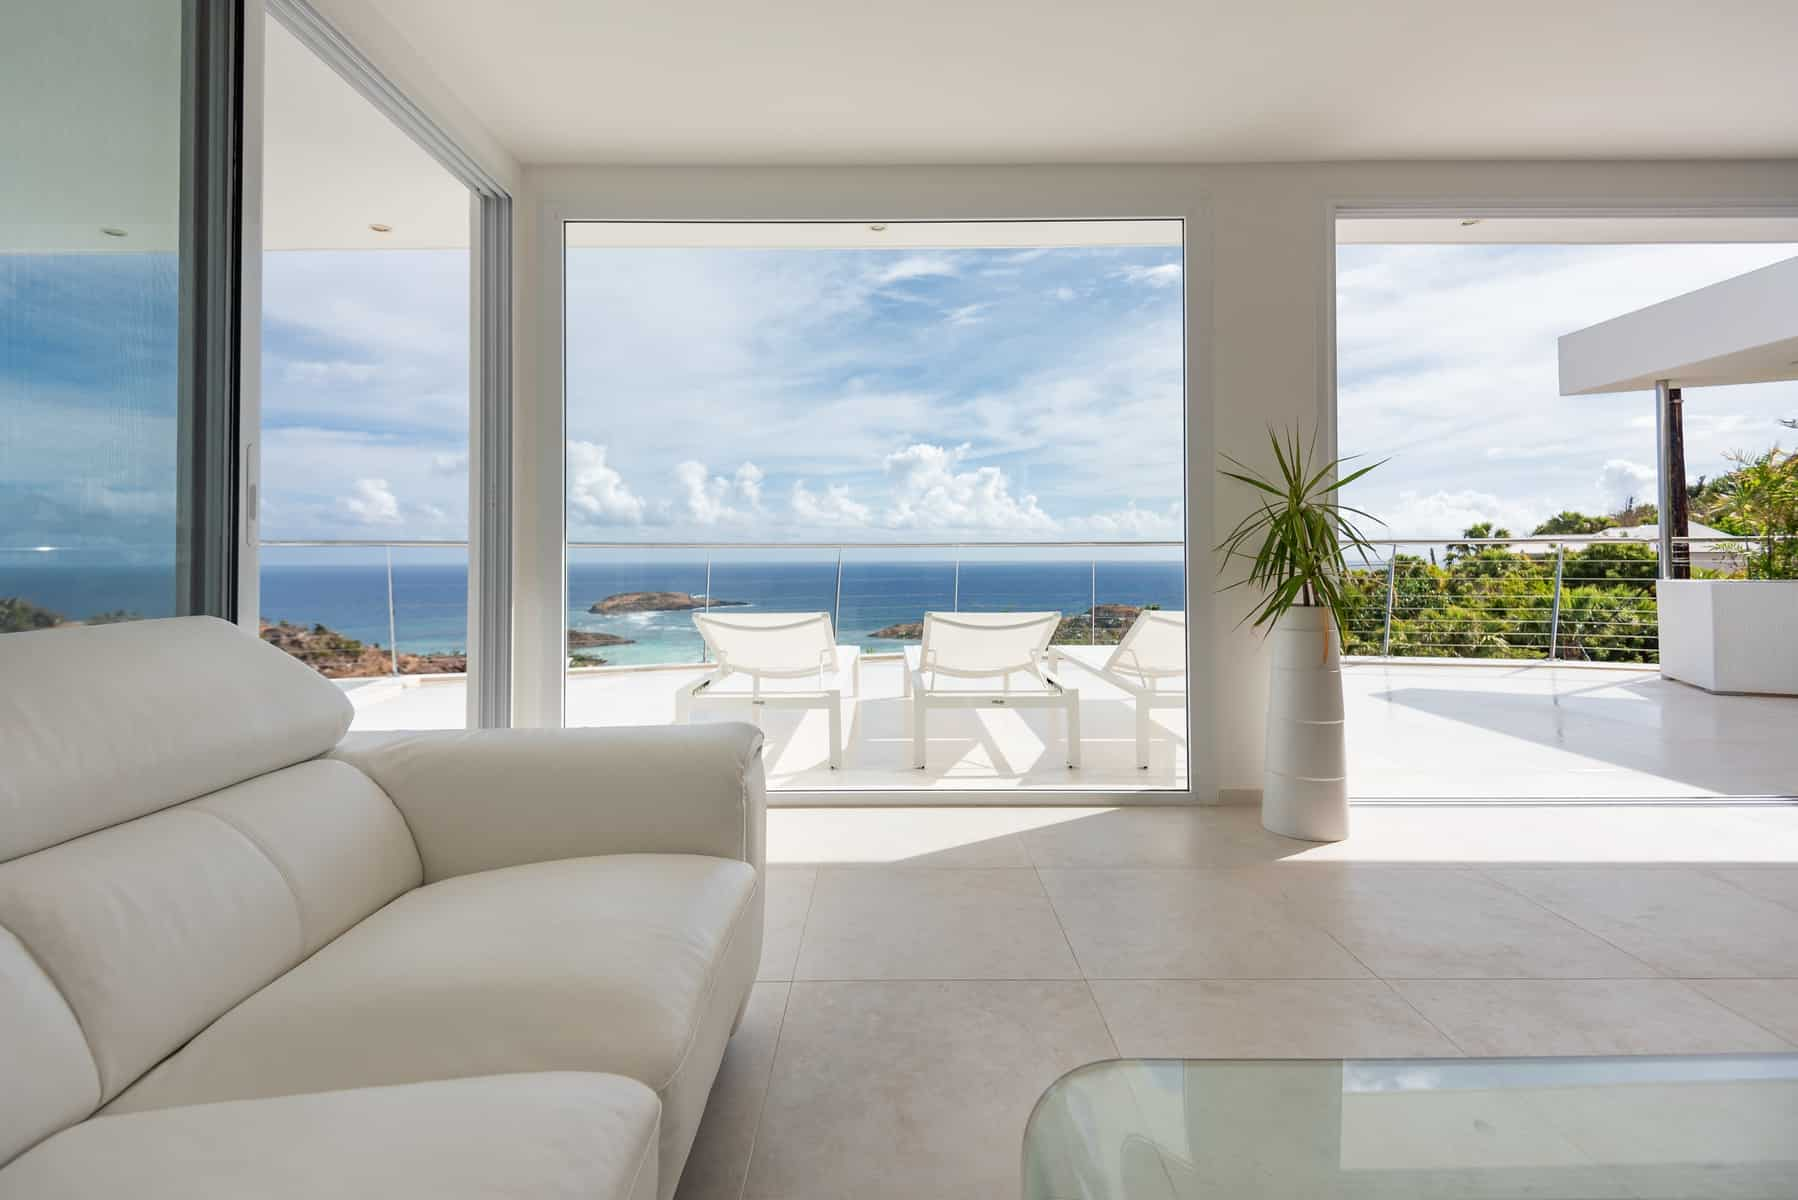 Couch with Ocean view